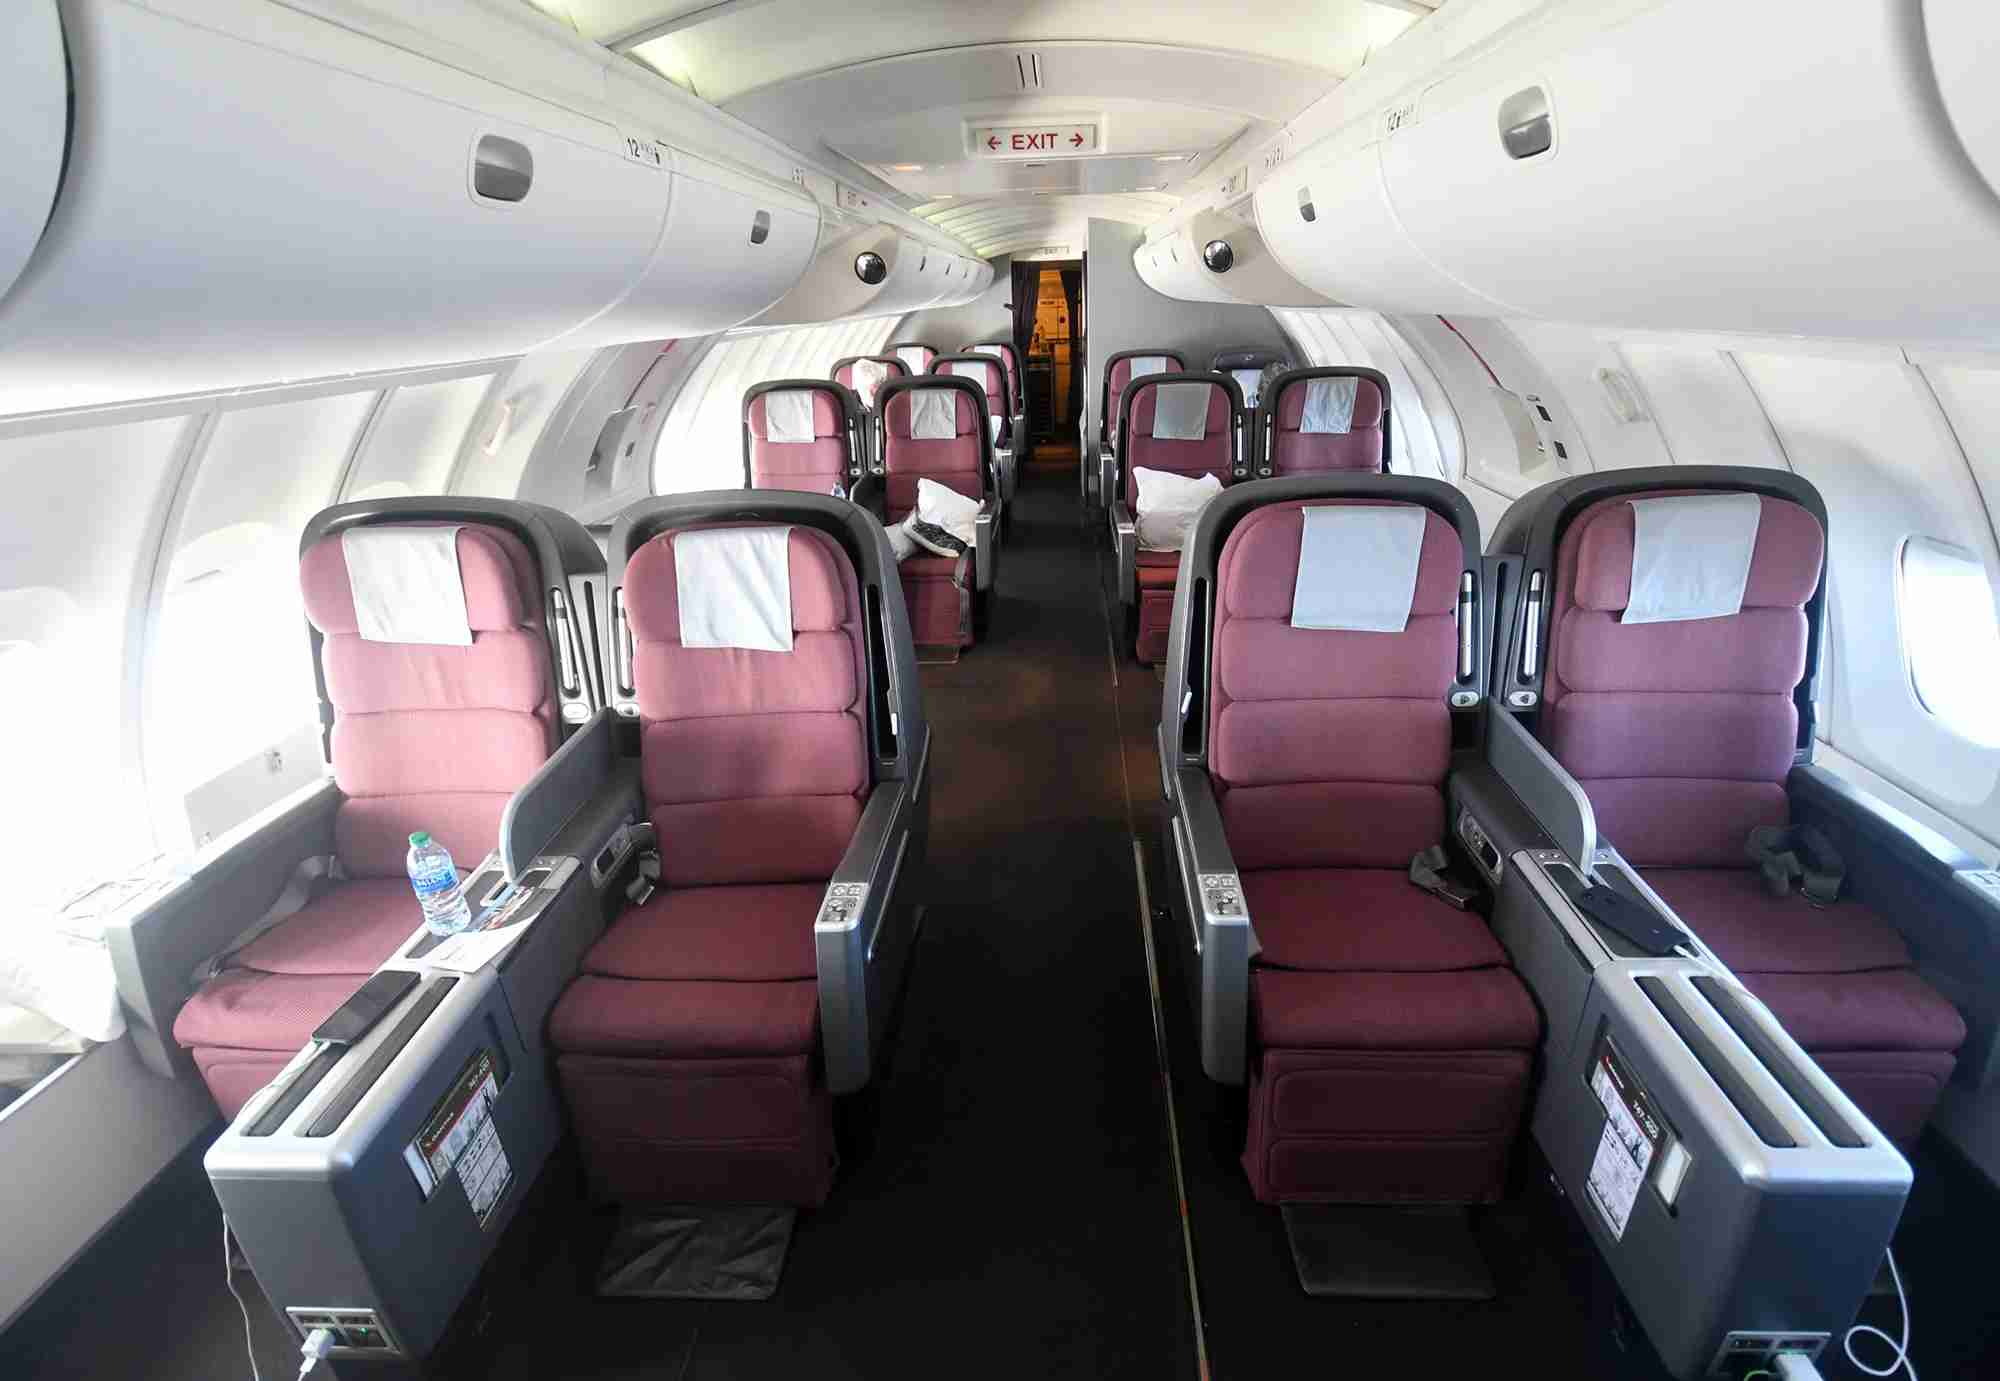 The upper deck on a Qantas Boeing 747-400 (Photo by Alberto Riva/The Points Guy)